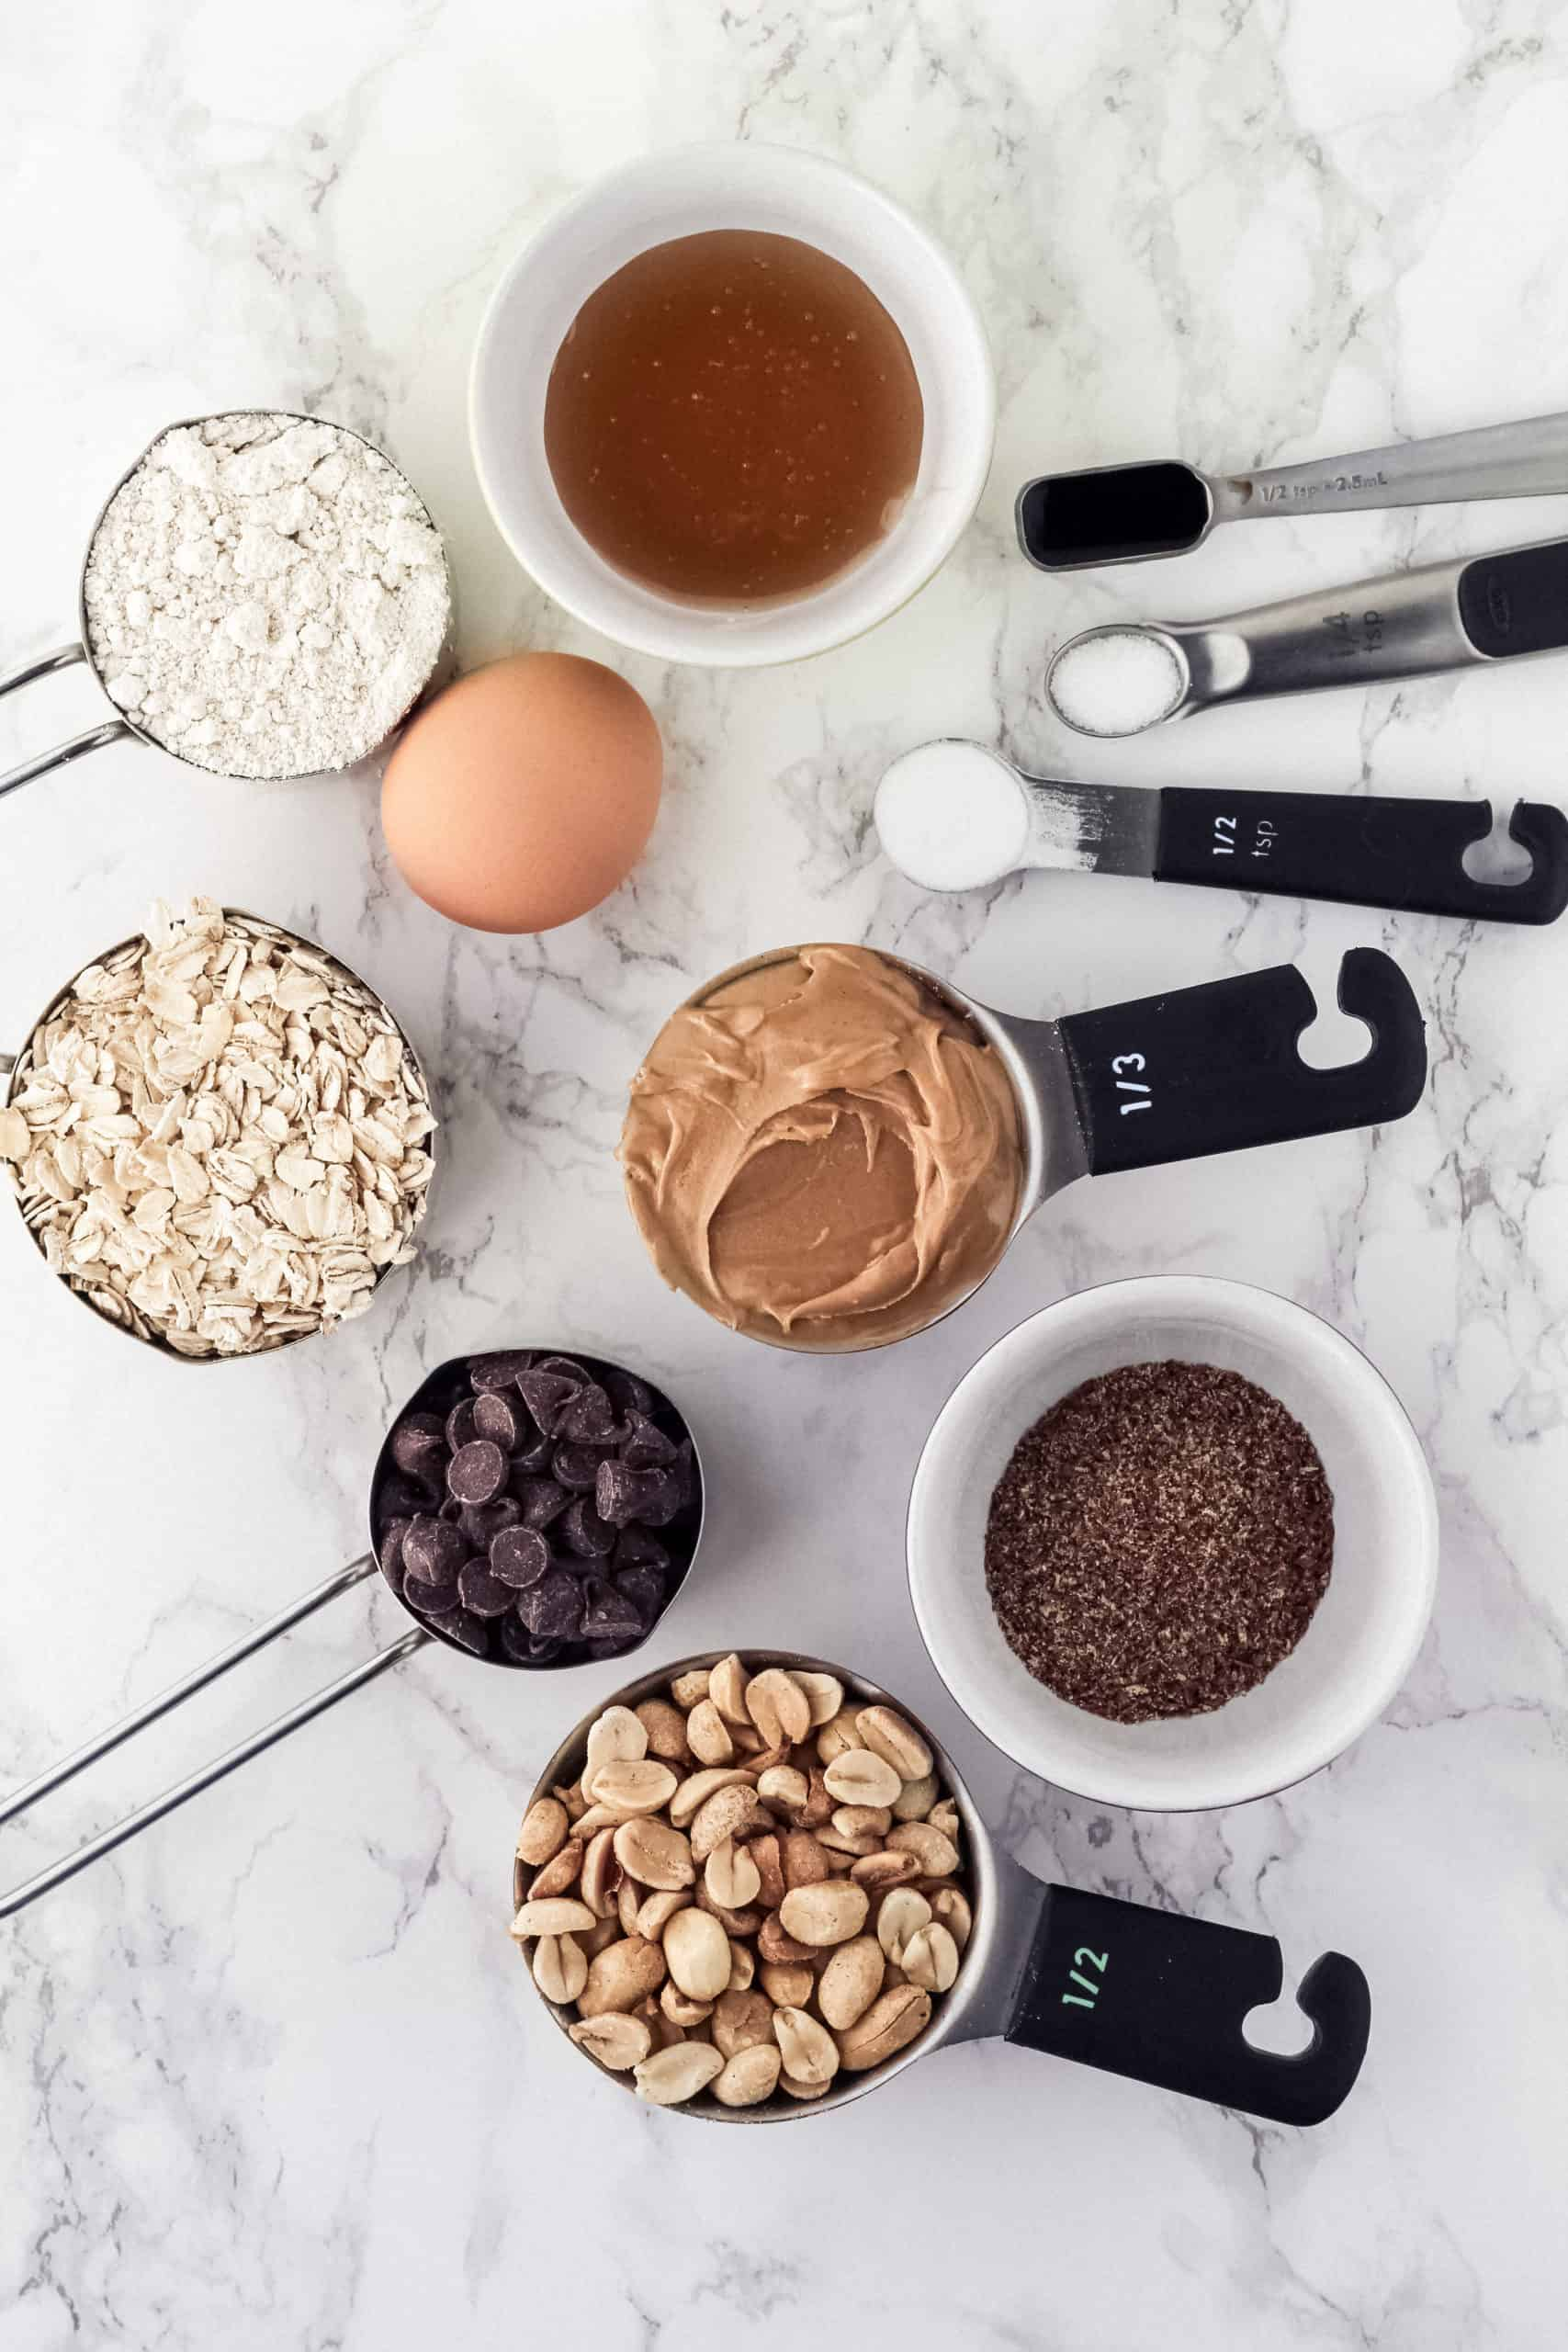 Ingredients in measuring cups and bowls